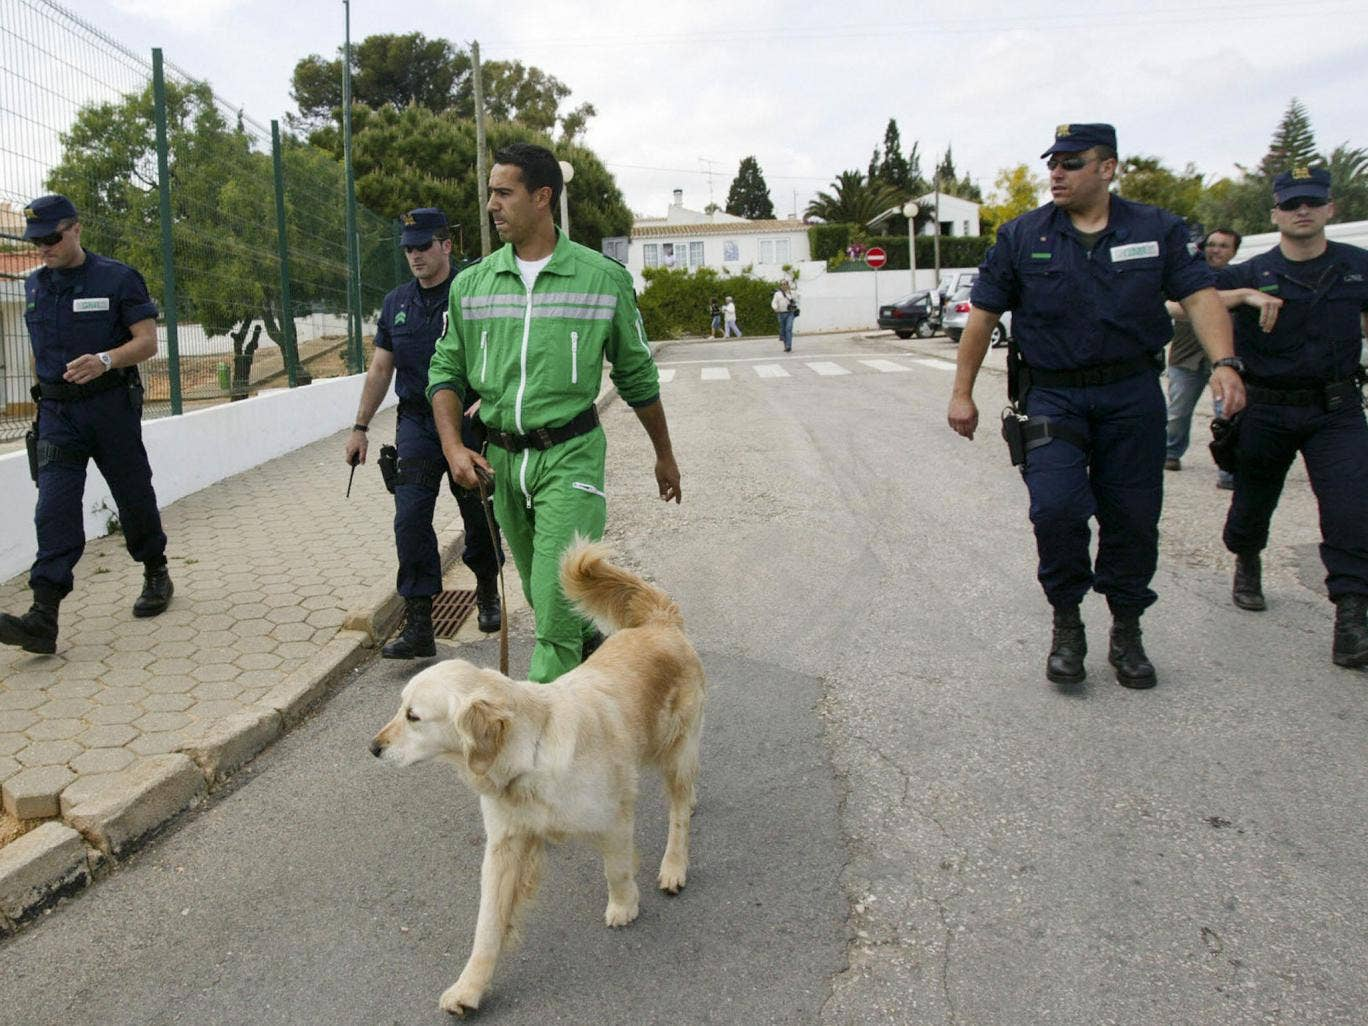 Dozens of Portuguese police carried out the initial search for Madelaine McCann in Praia de Luz when she disappeared in 2007